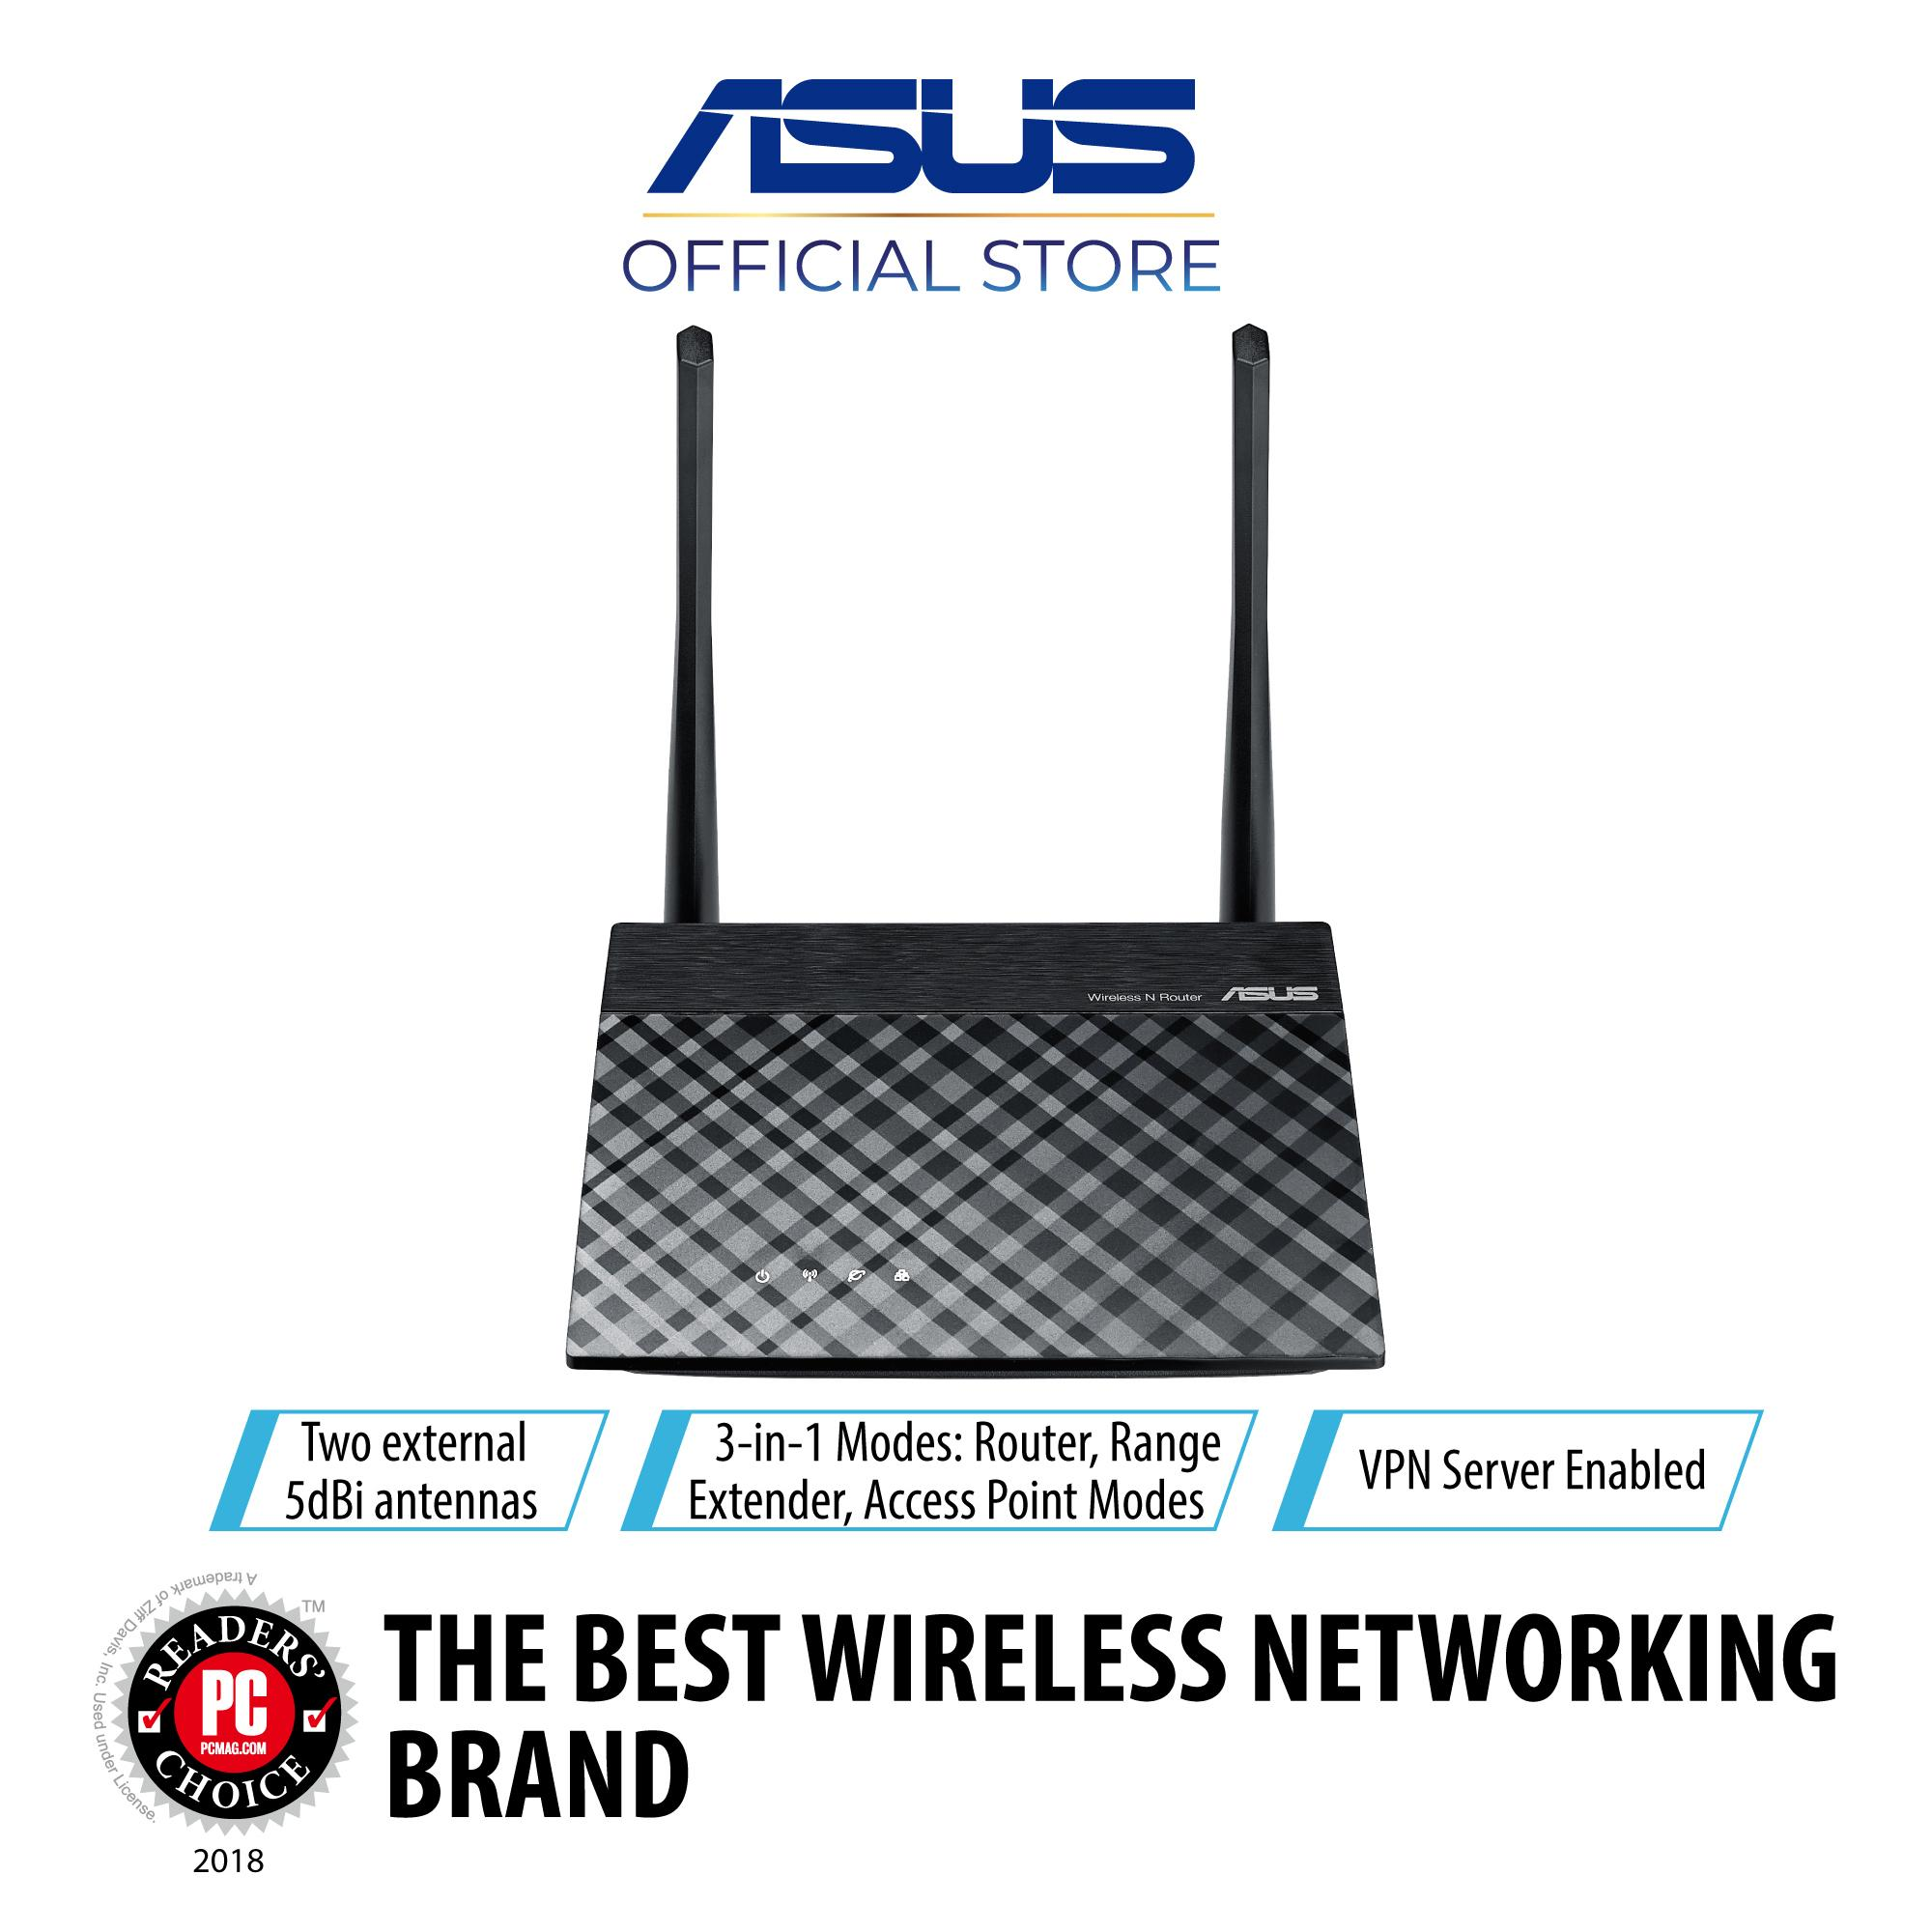 B1300 Home AC Router GLiNet Routers Wifi t